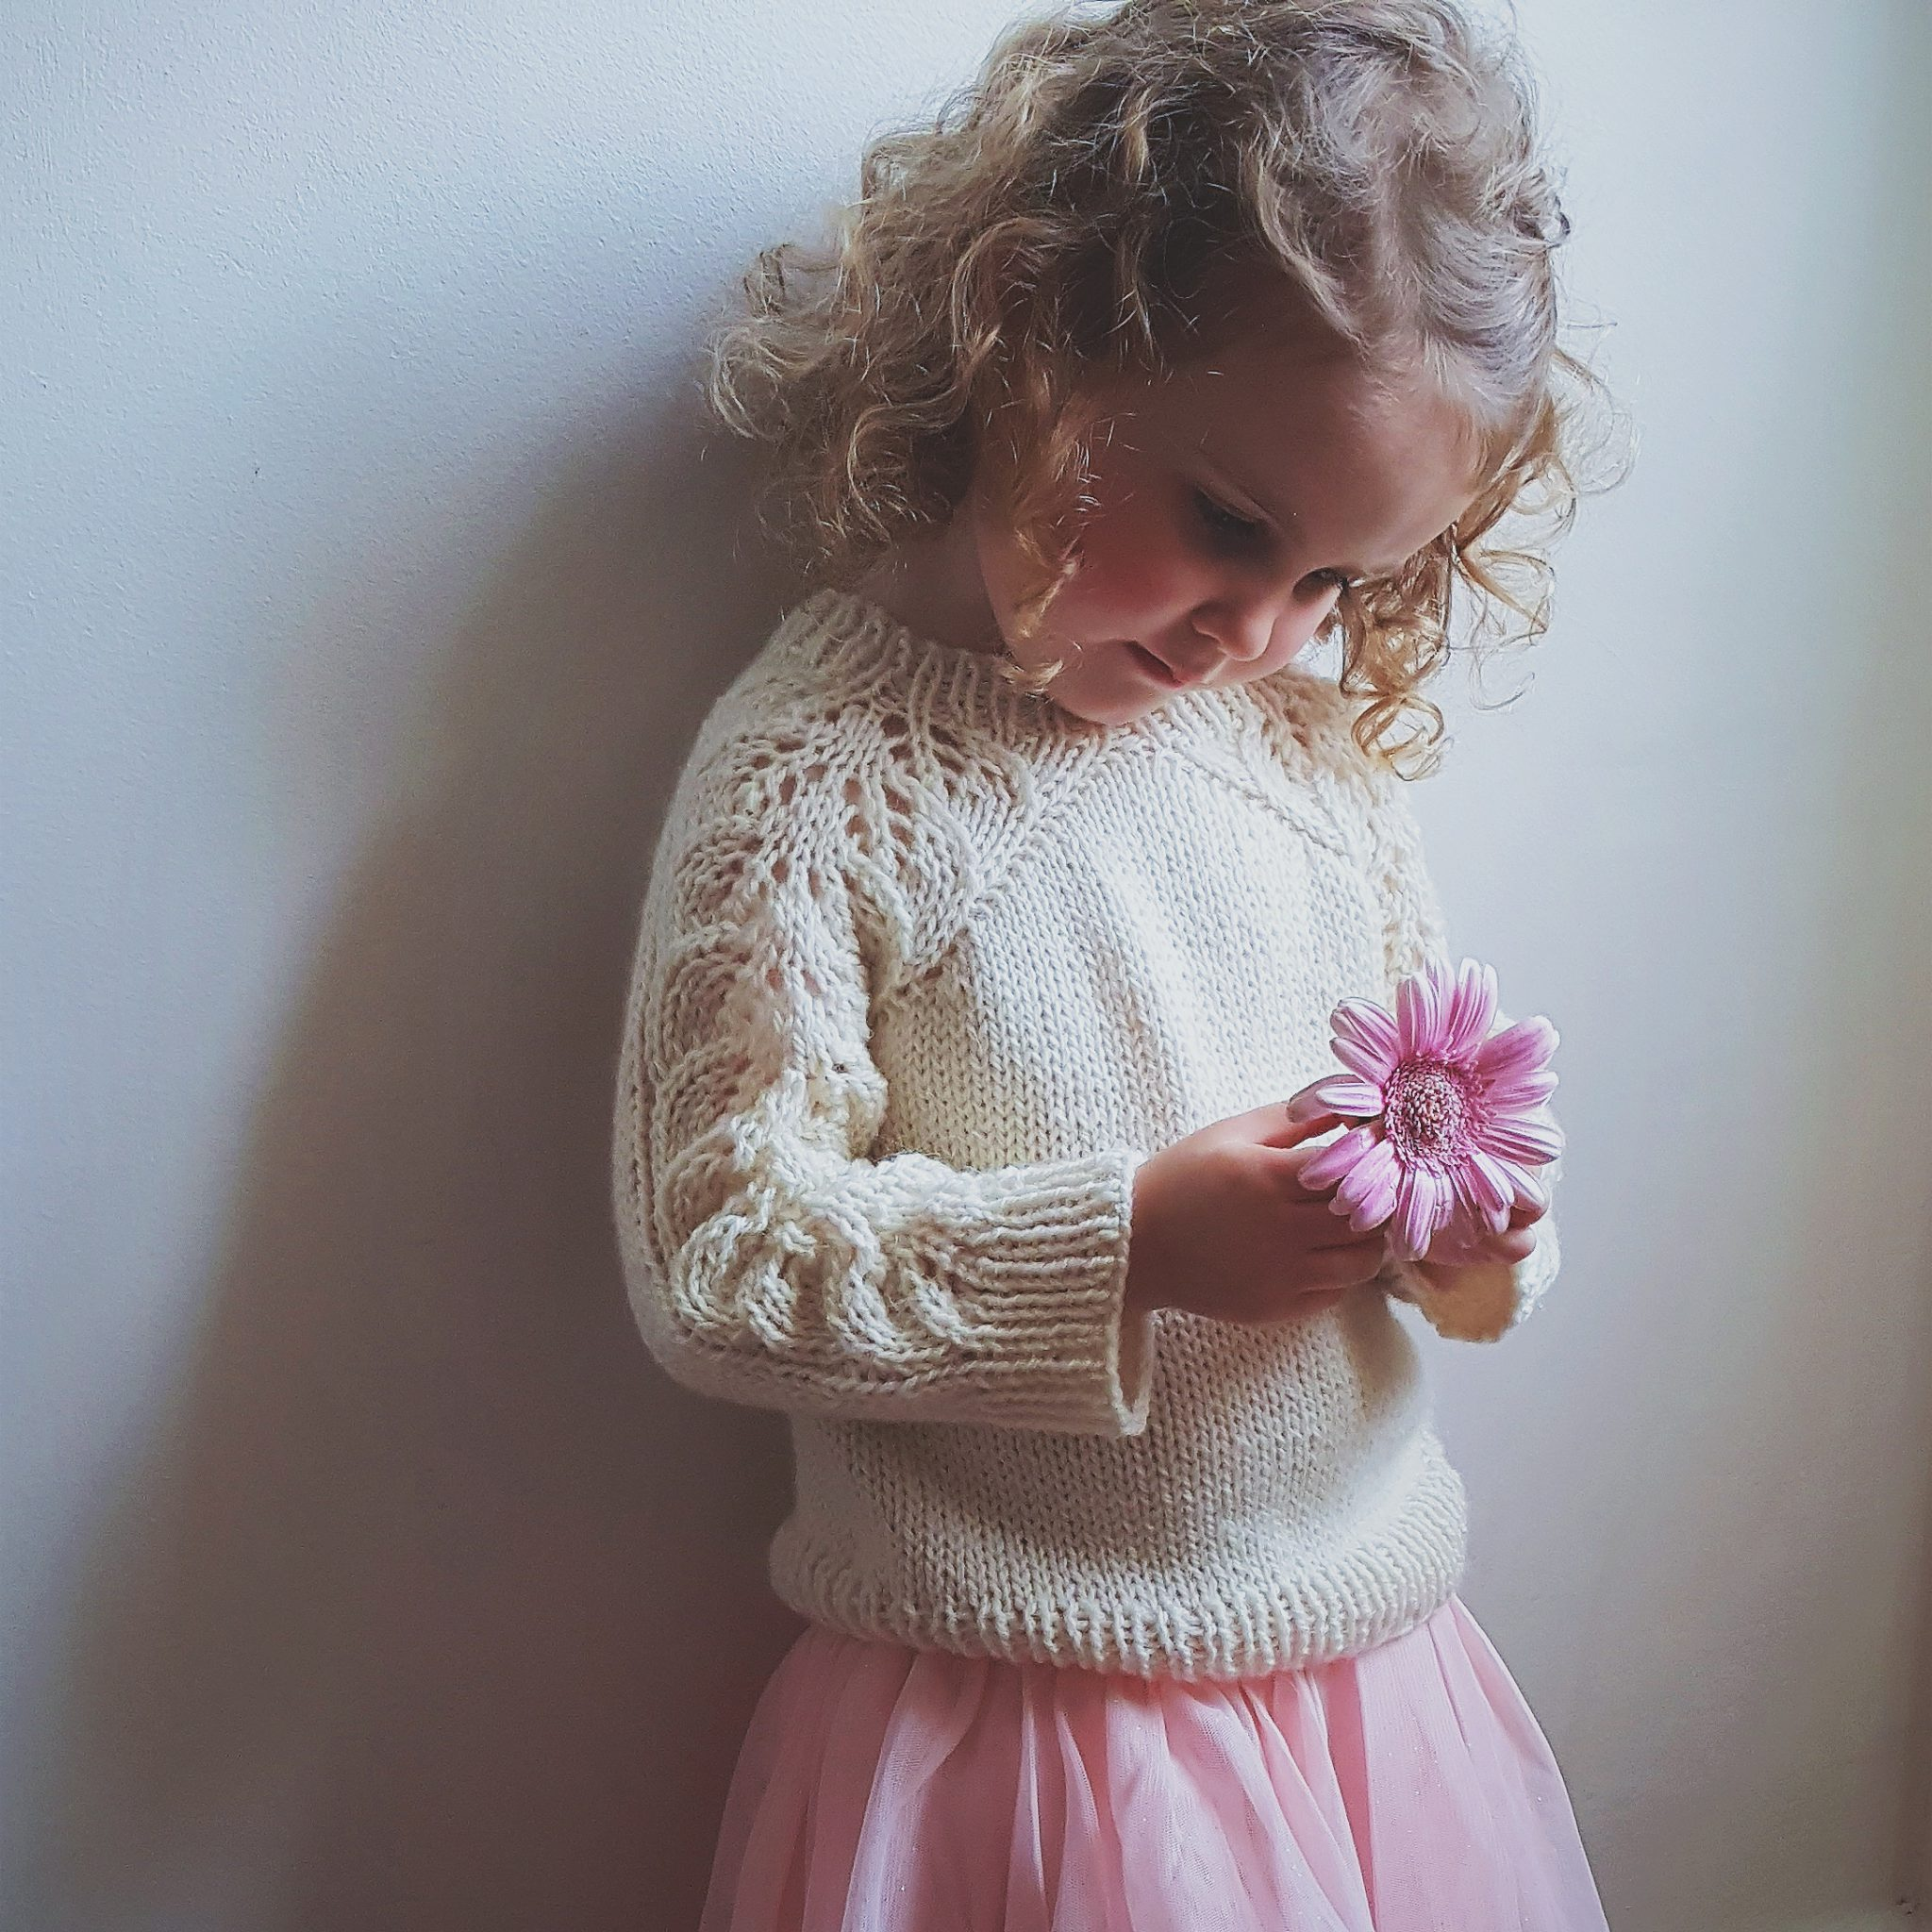 Bloomsbury kids Sweater with The Fibre Co. Cumbria.